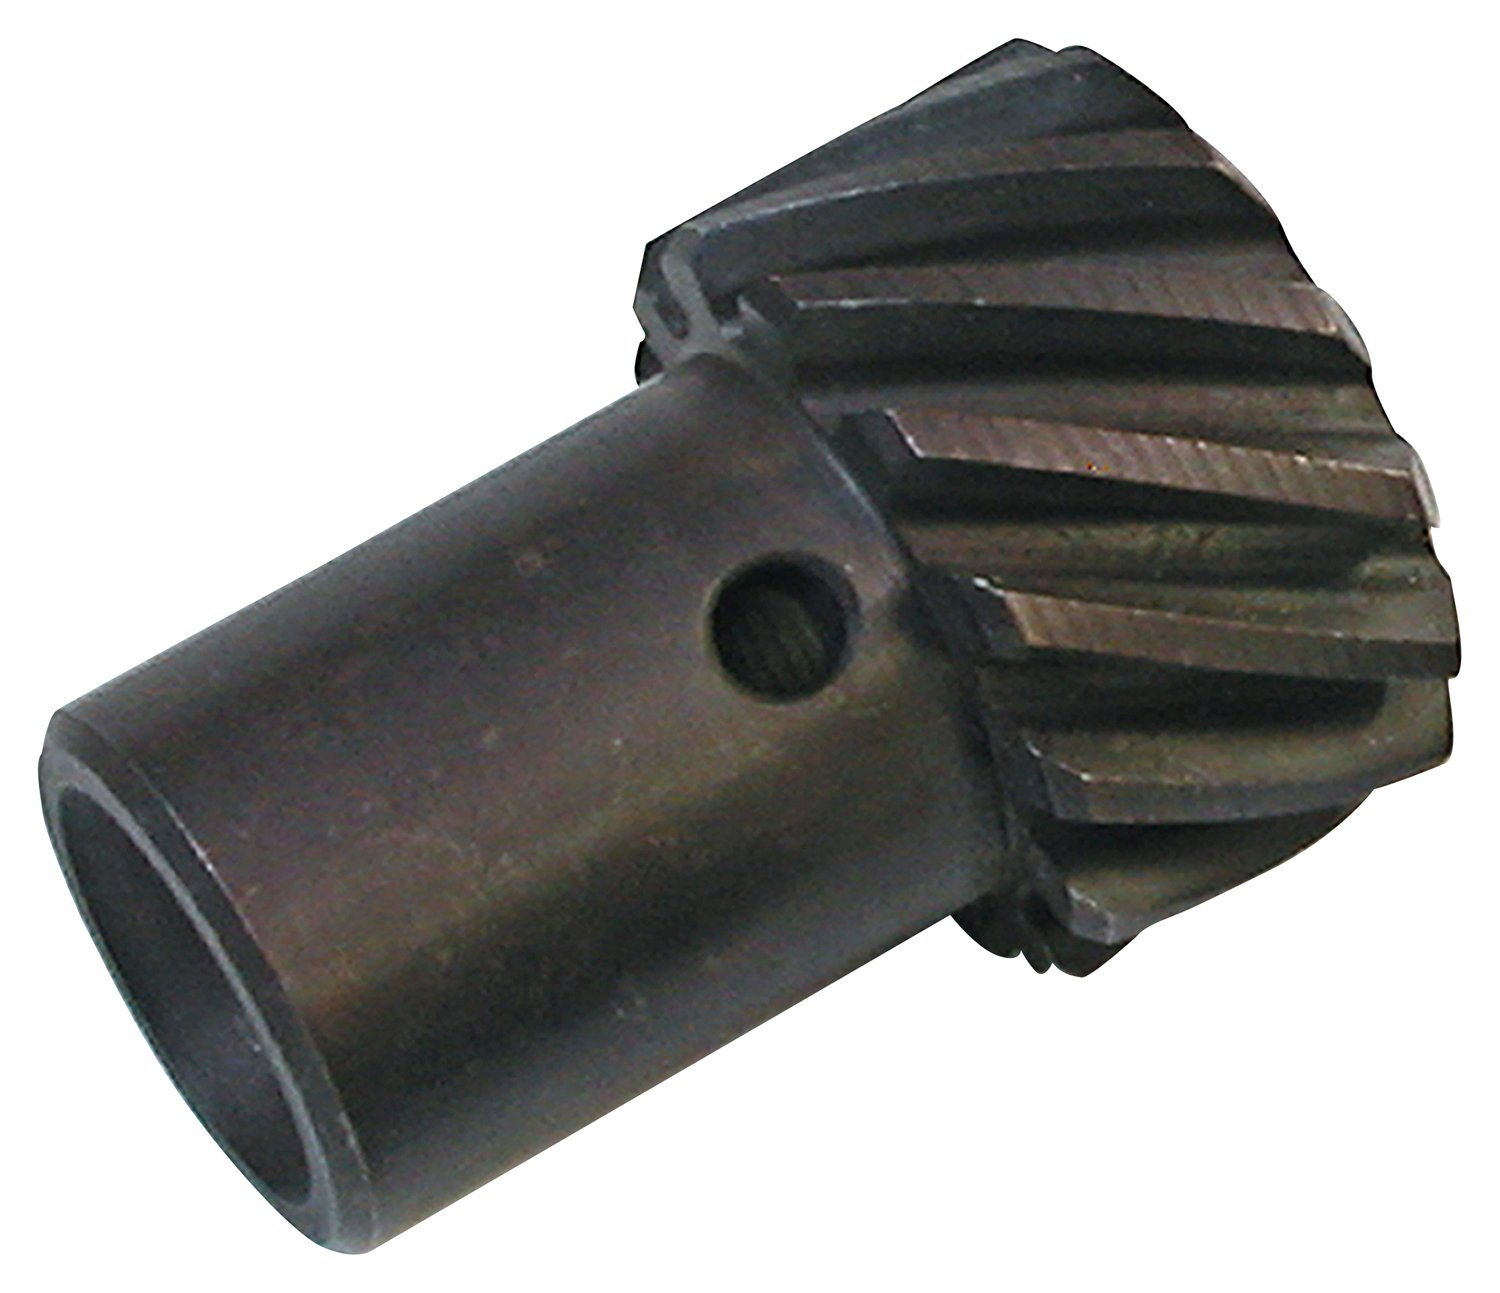 Iron Distributor Gear for MSD Chevy Distributor, .500 ID